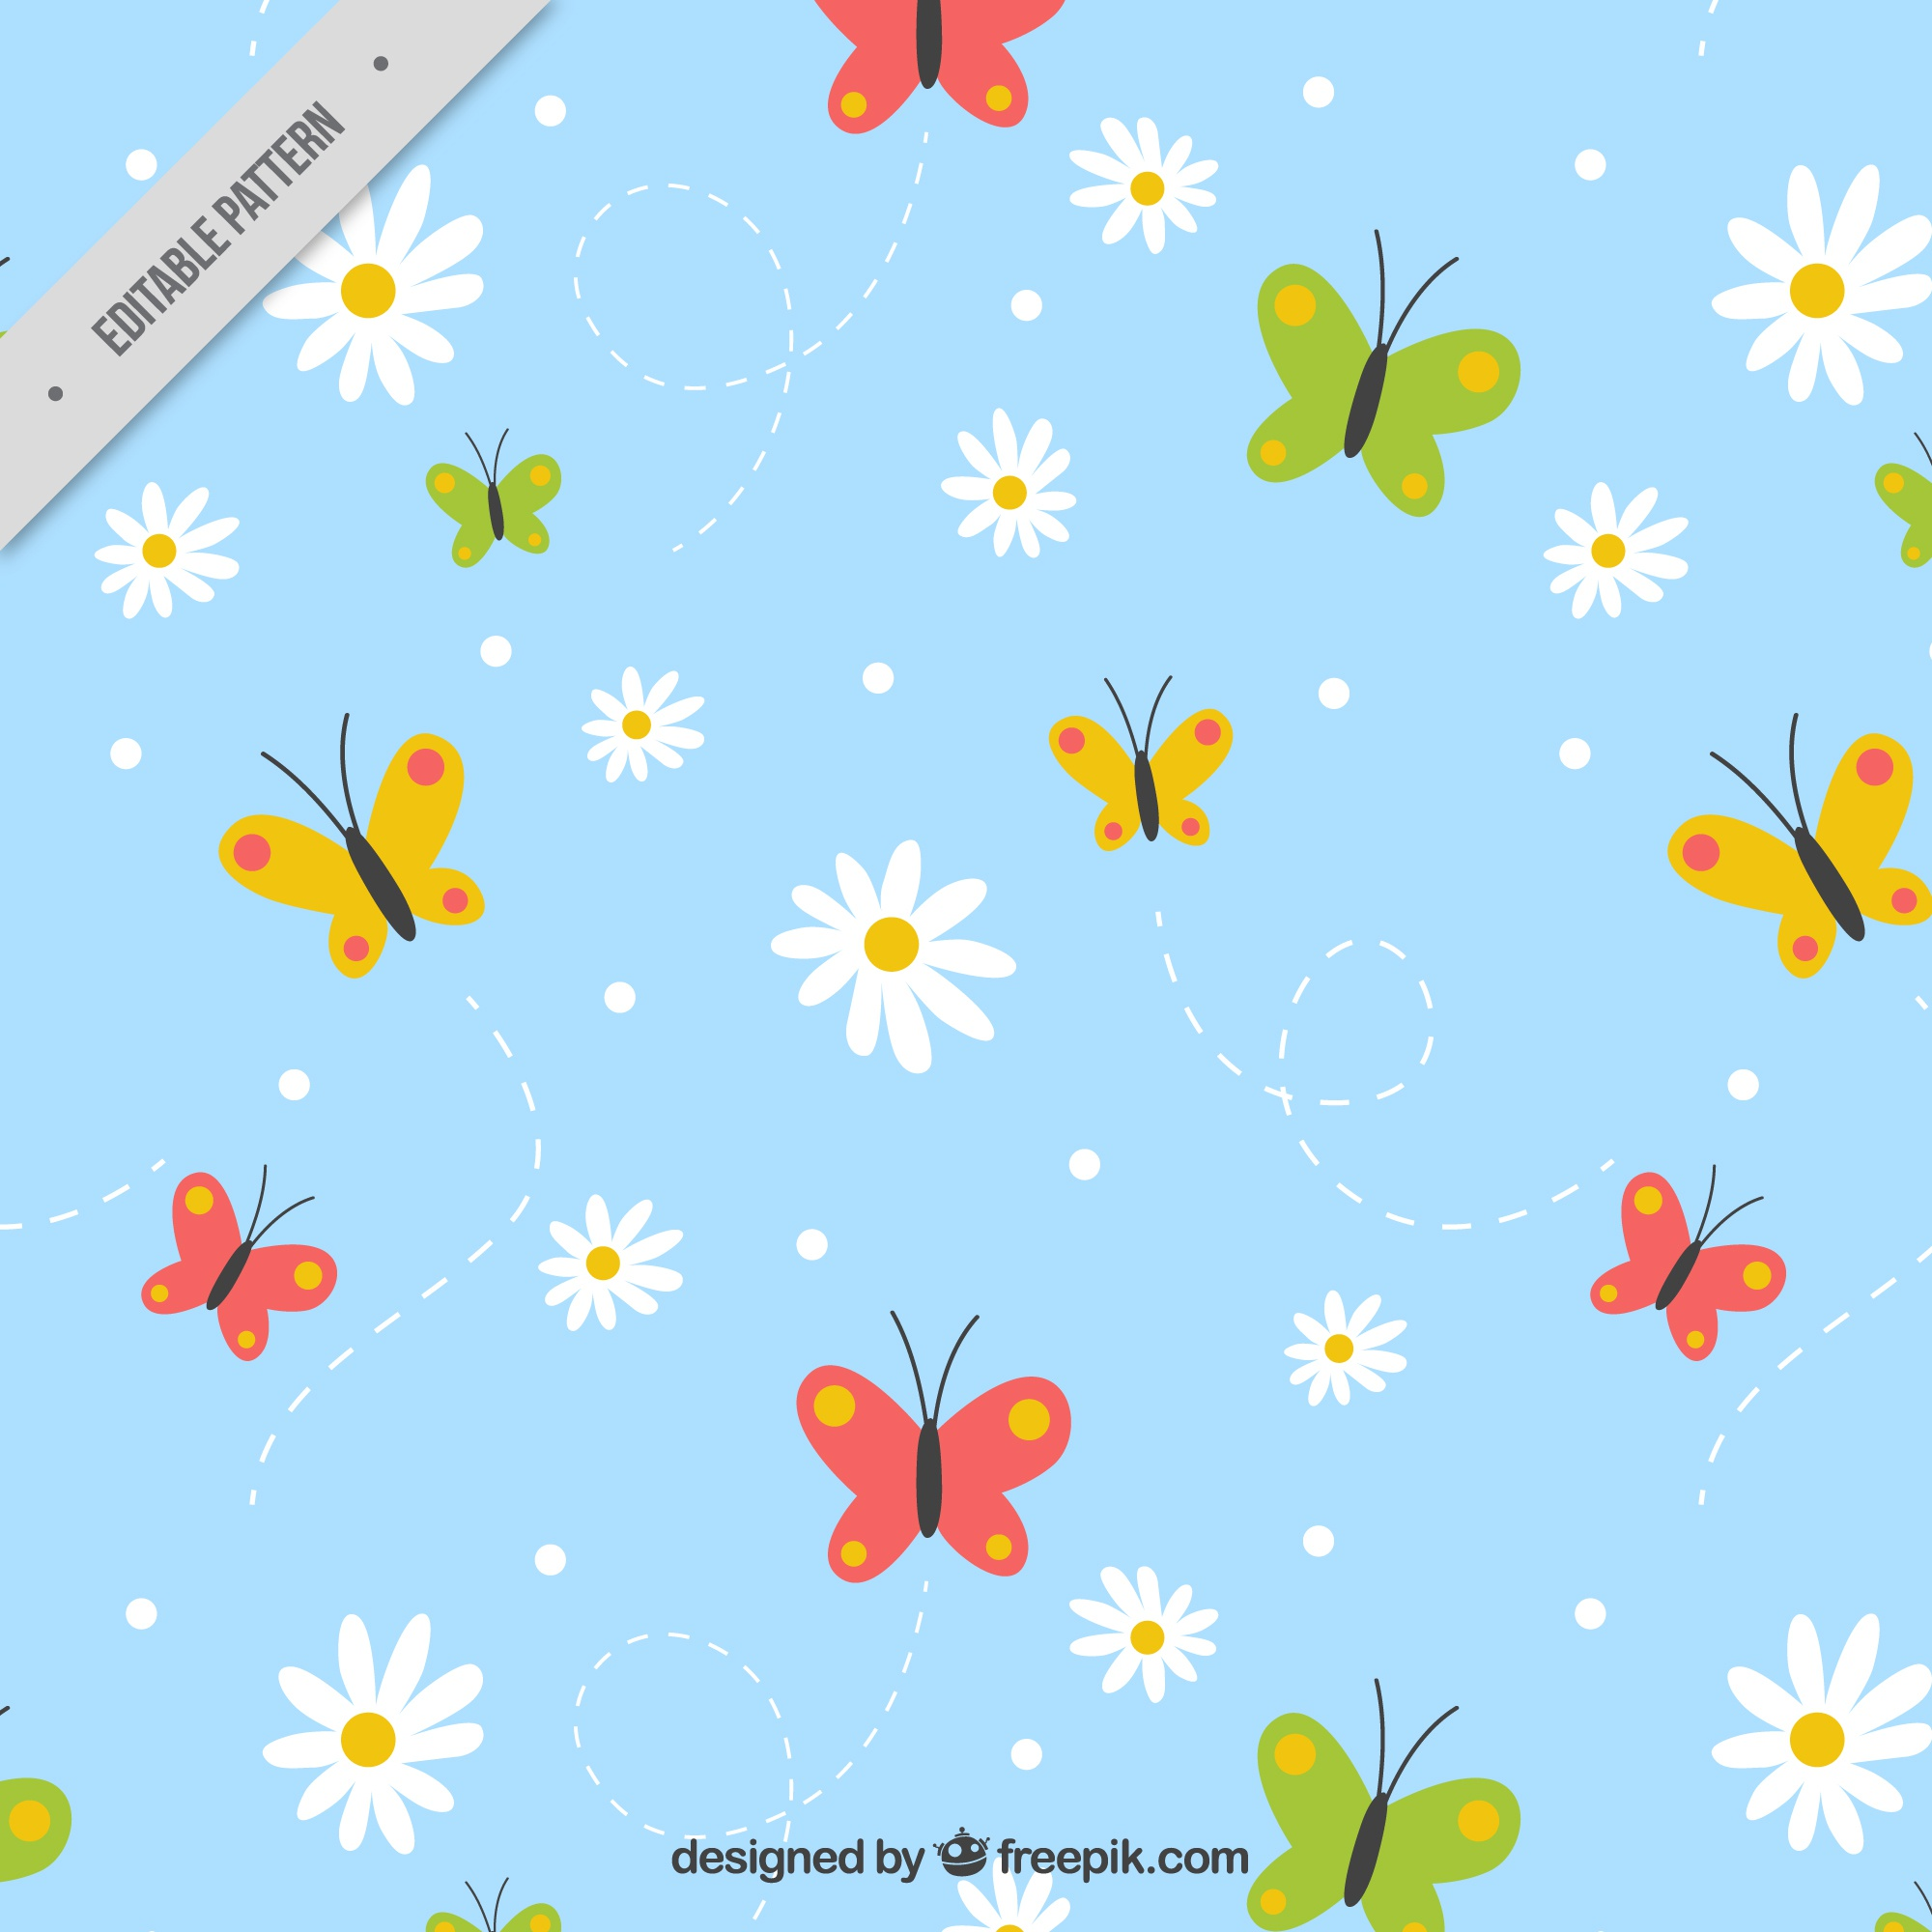 Hand-drawn pattern with daisies and colored butterflies